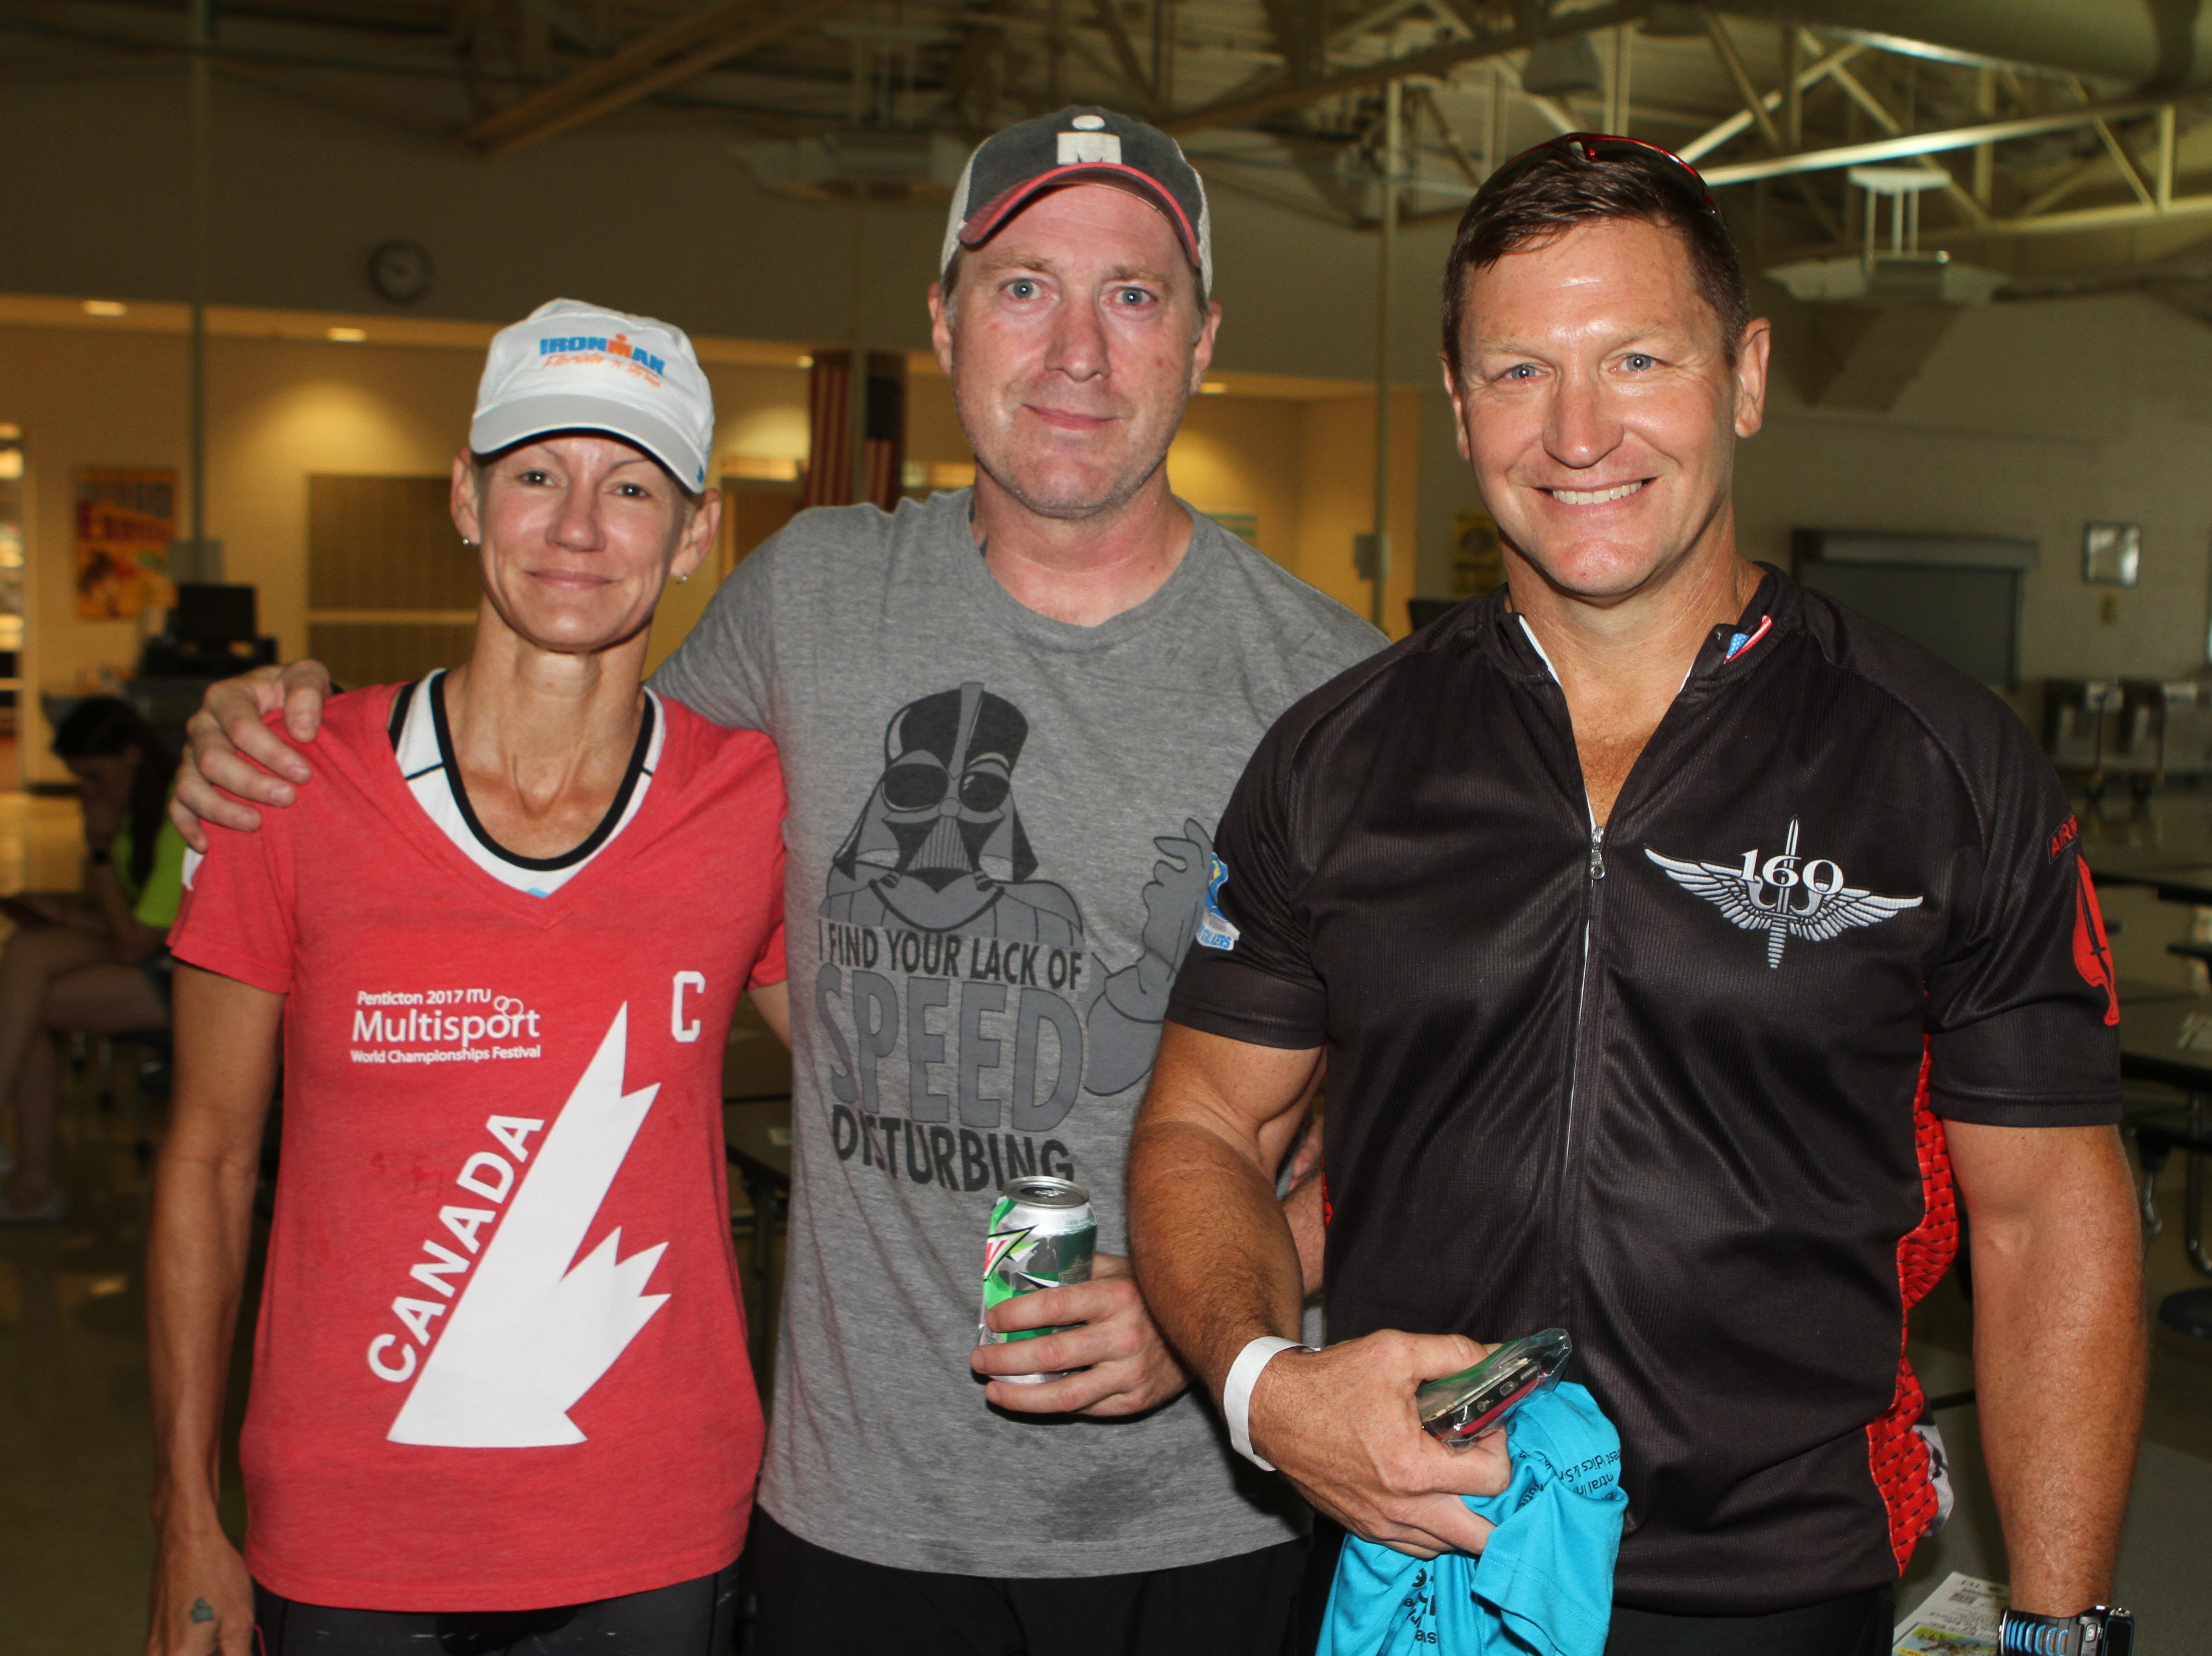 Sheri and Sean Jones and Scott Hutcheson completed 33 miles in 1 hour, 32 minutes at the Sunrise Century Bike Ride Saturday.